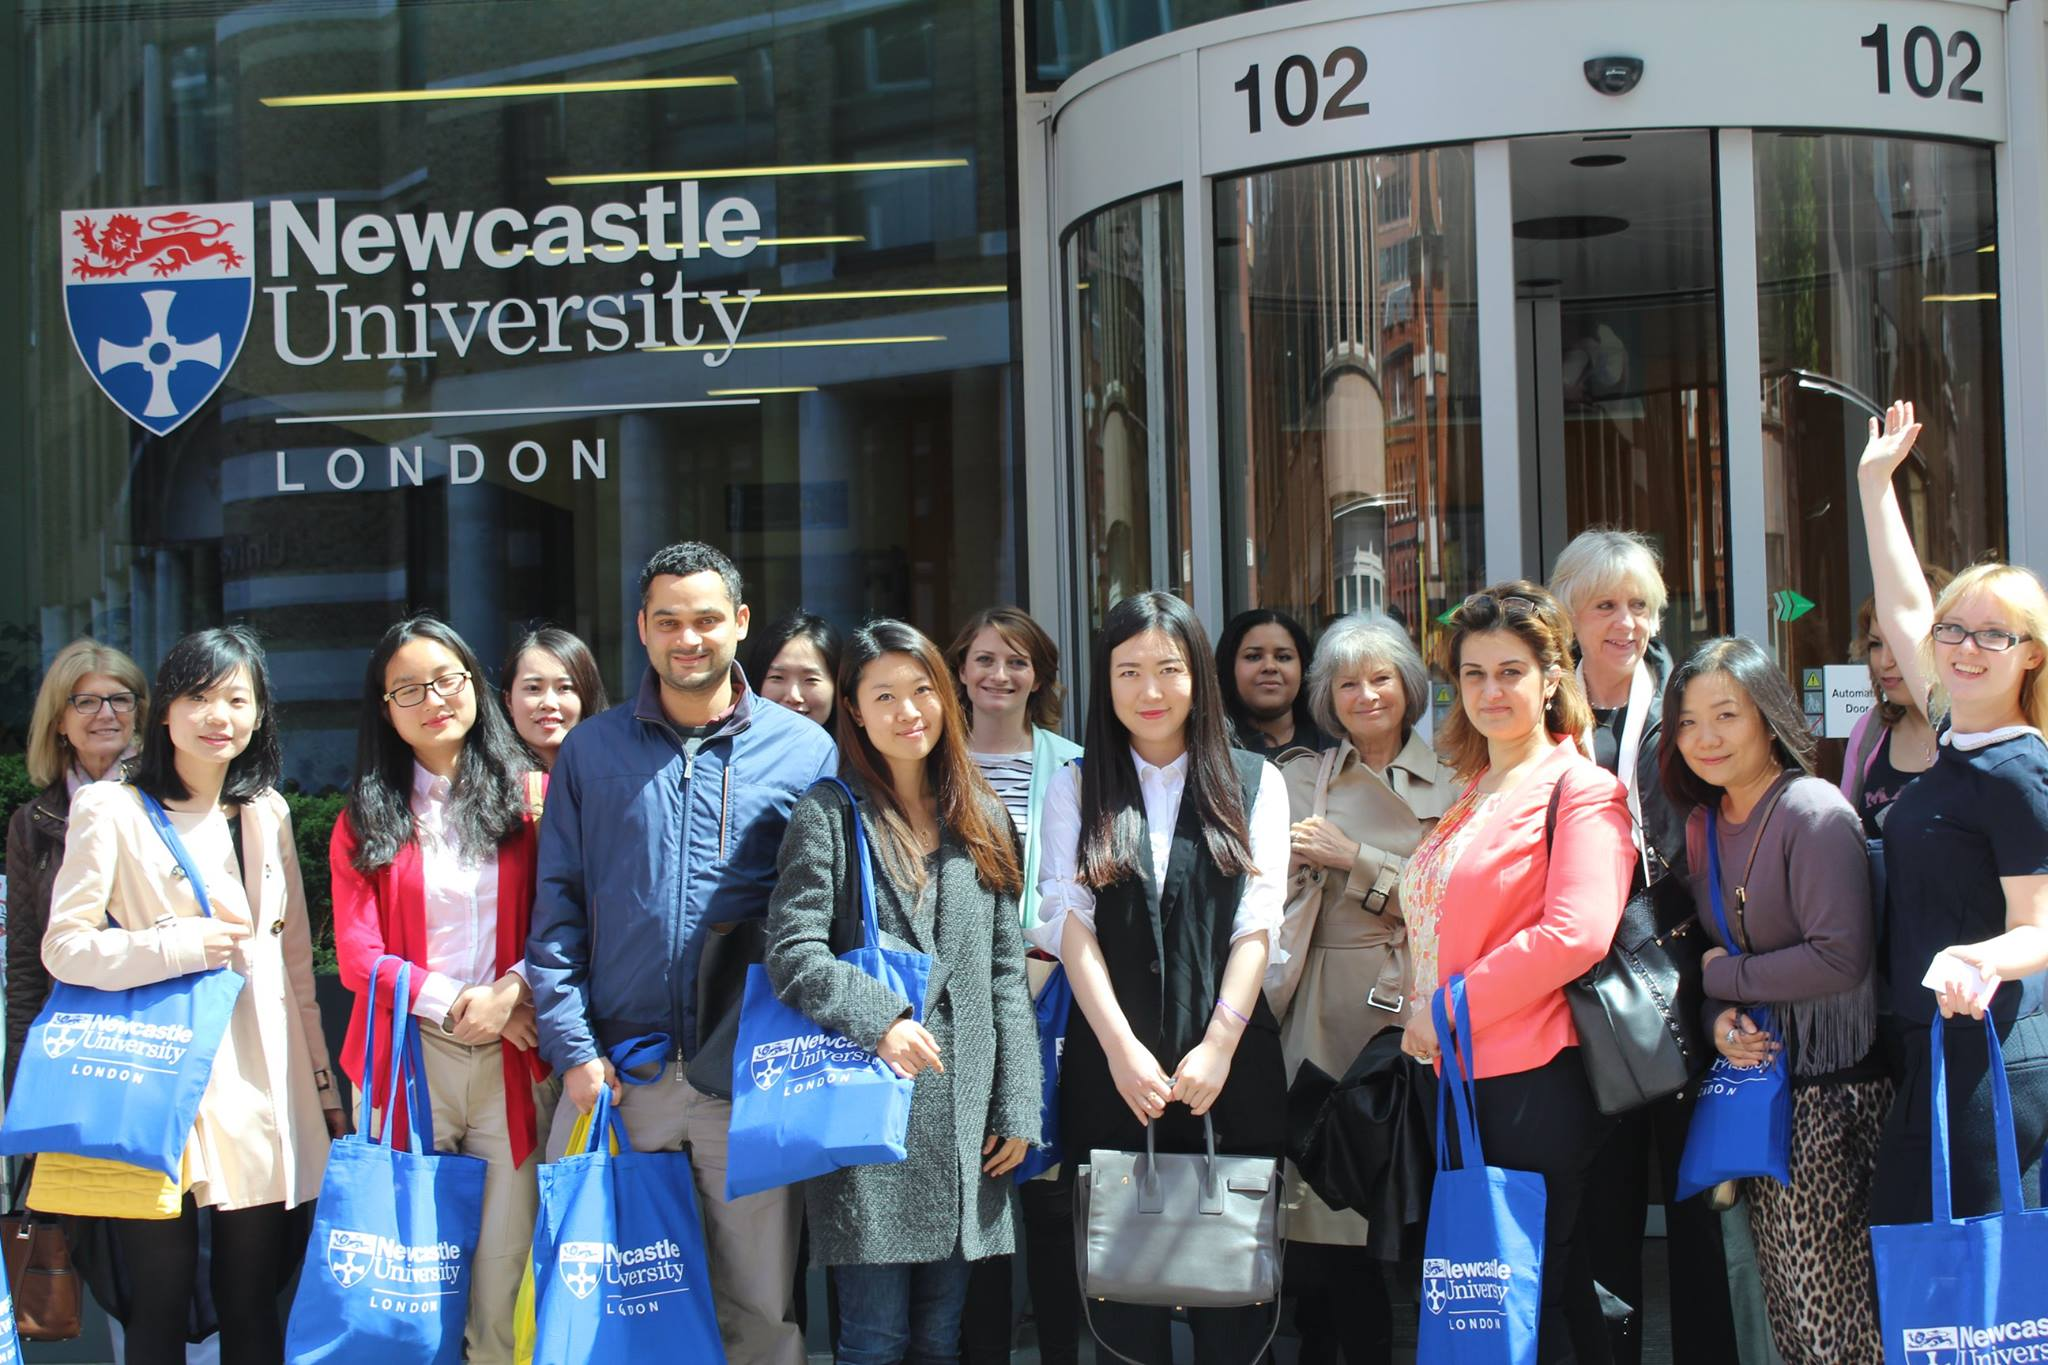 1-newcastle-university-london-du-hoc-anh